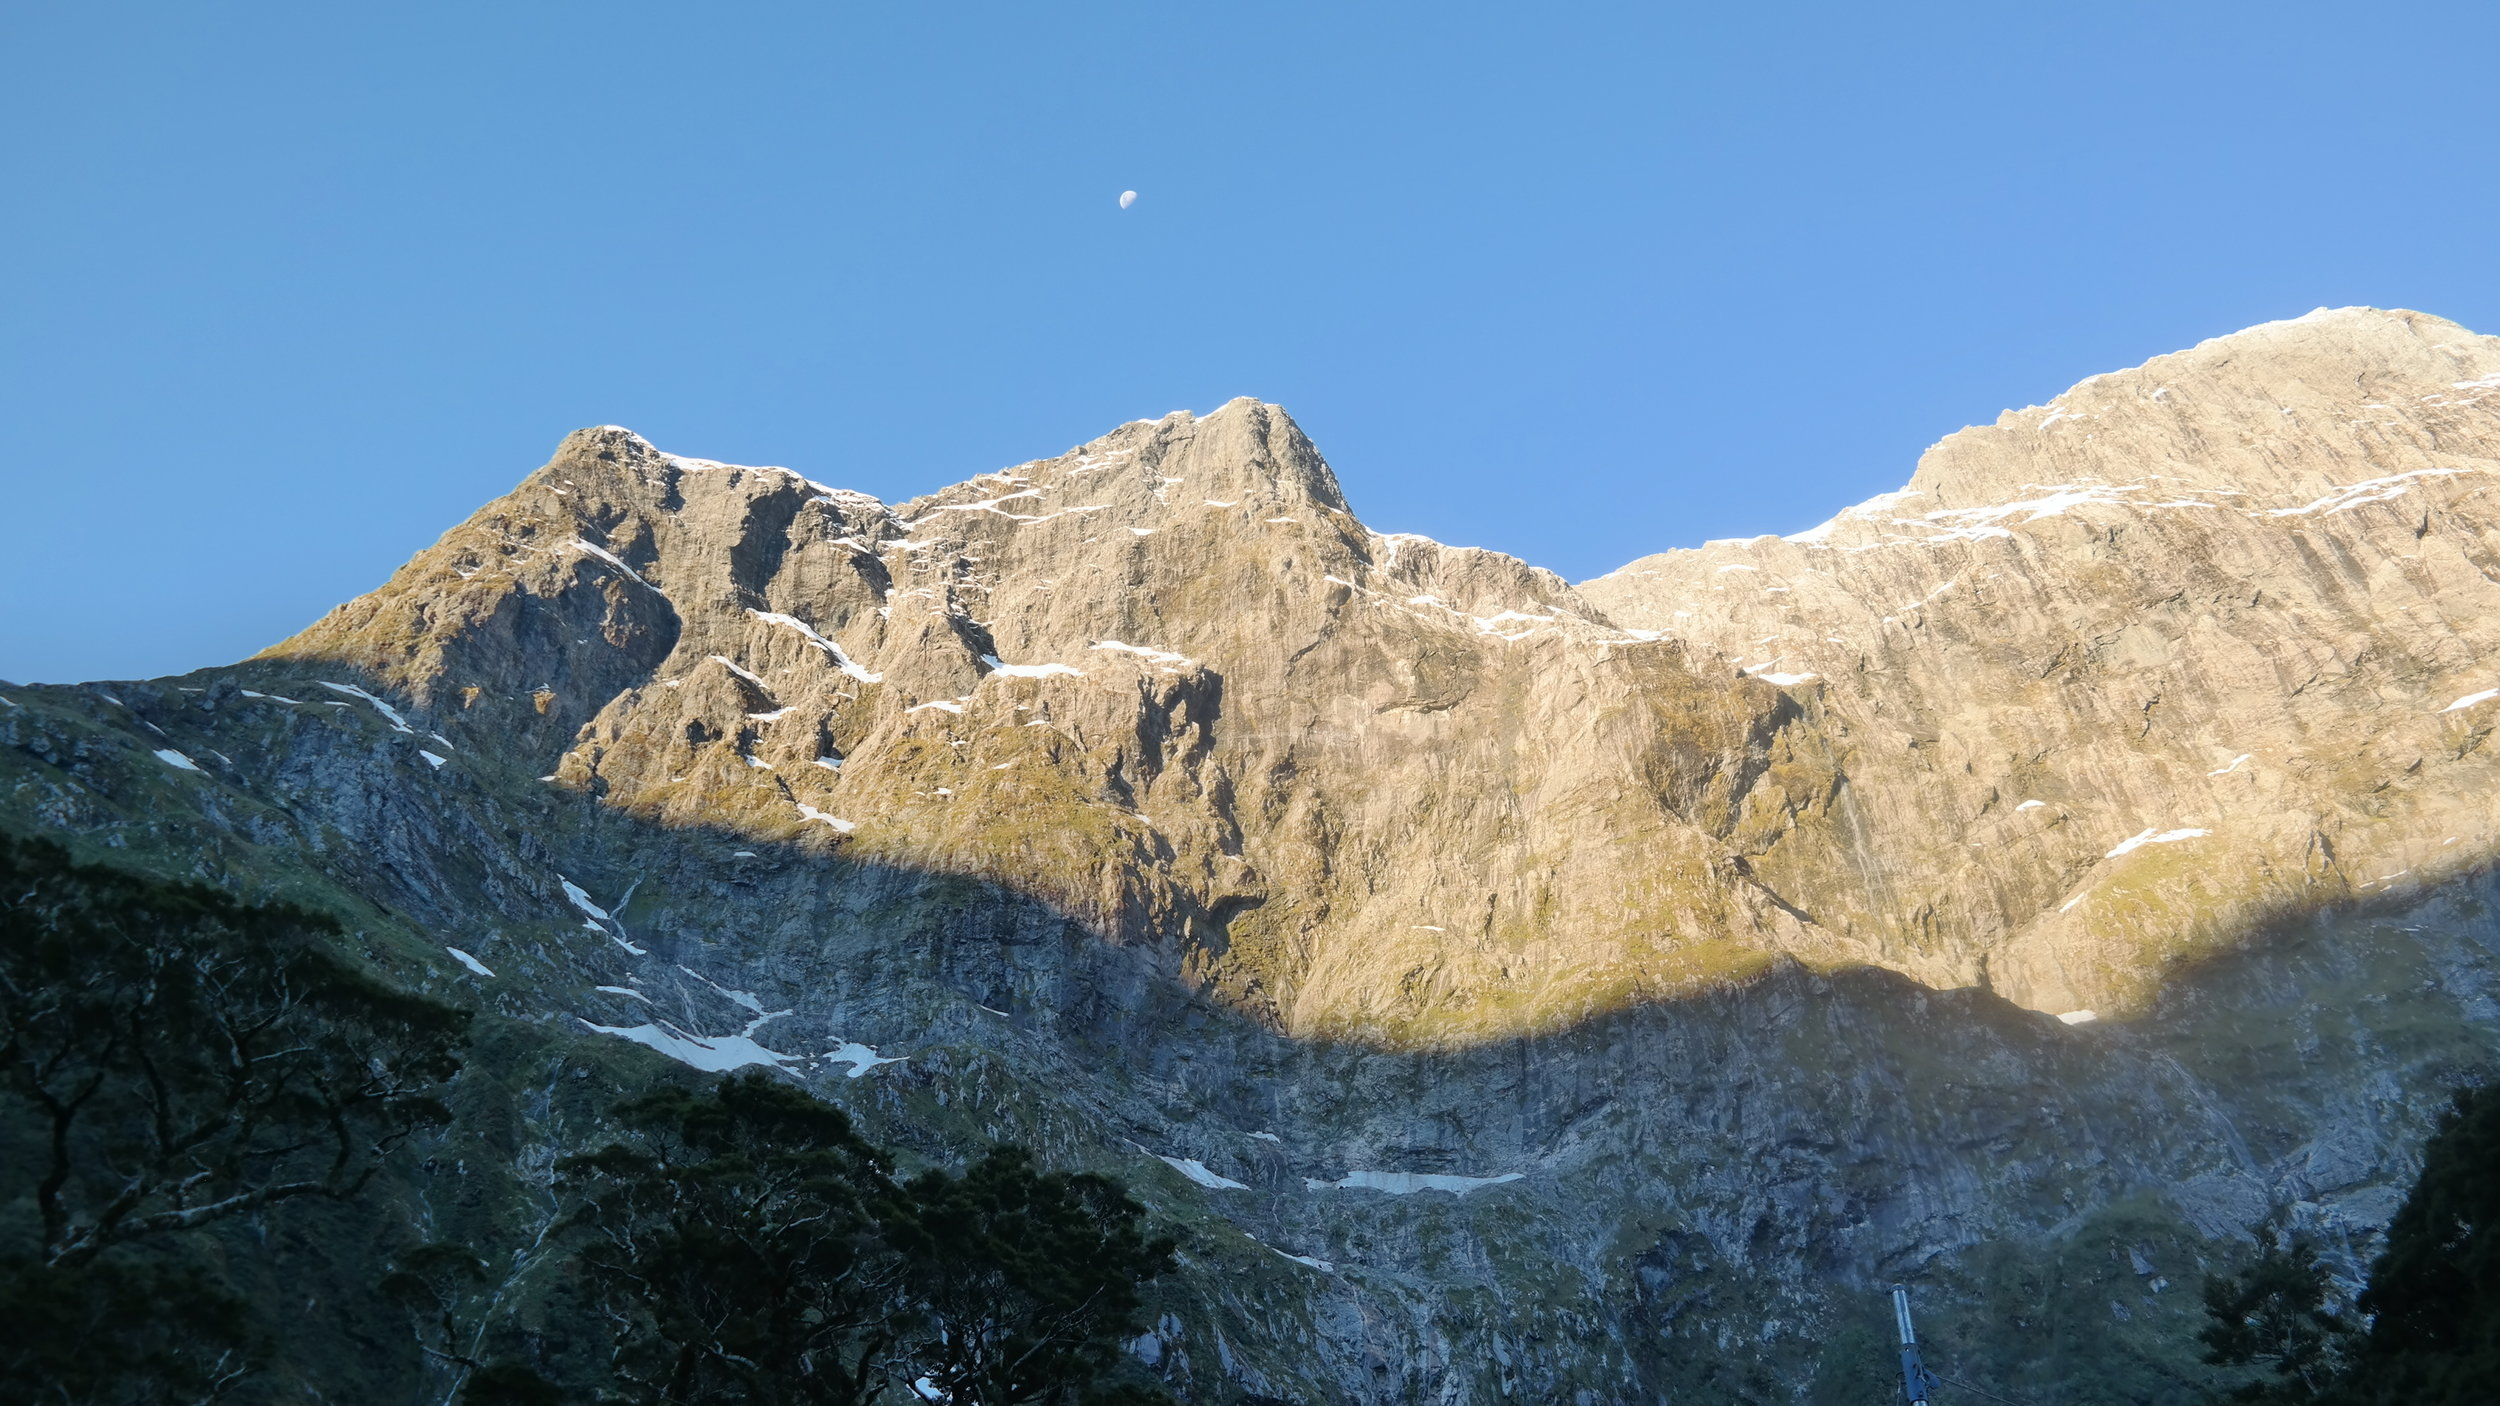 View of the moon from the front porch of Mintaro Hut.